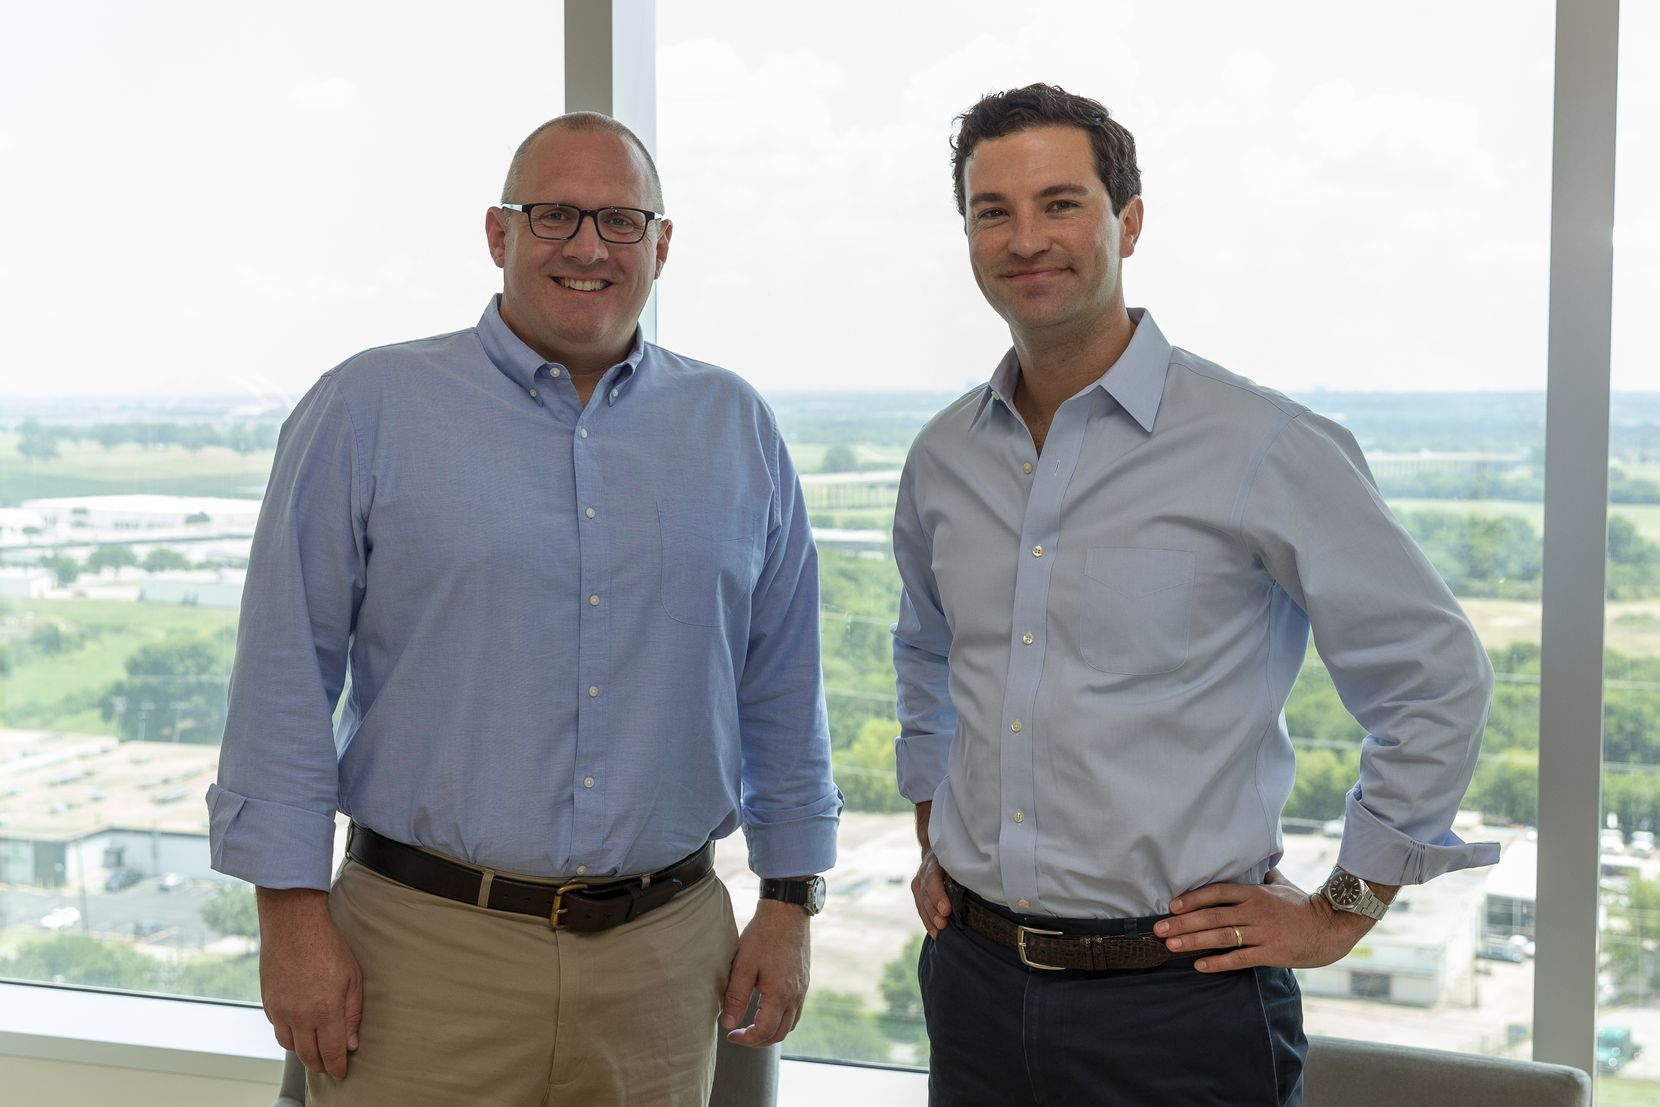 Steve Davis (left), president of J. Small Investments, and Matt Crommett, director at Lyda Hill Philanthropies and LH Capital, at Pegasus Park in Dallas. The 23-acre campus includes commercial office space, biotech facilities and dining and entertainment spaces.